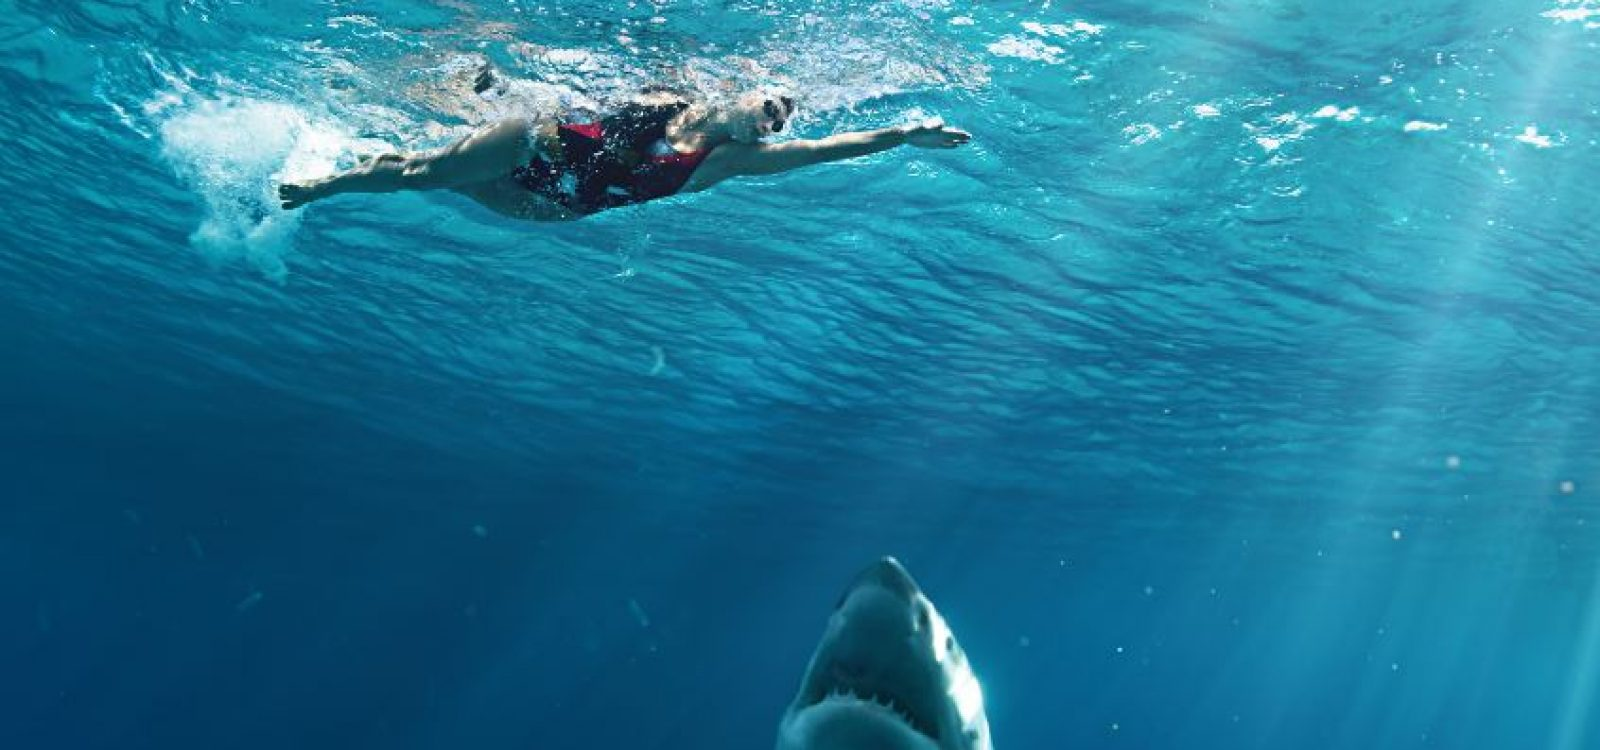 Why are there more shark attacks being reported in NSW?